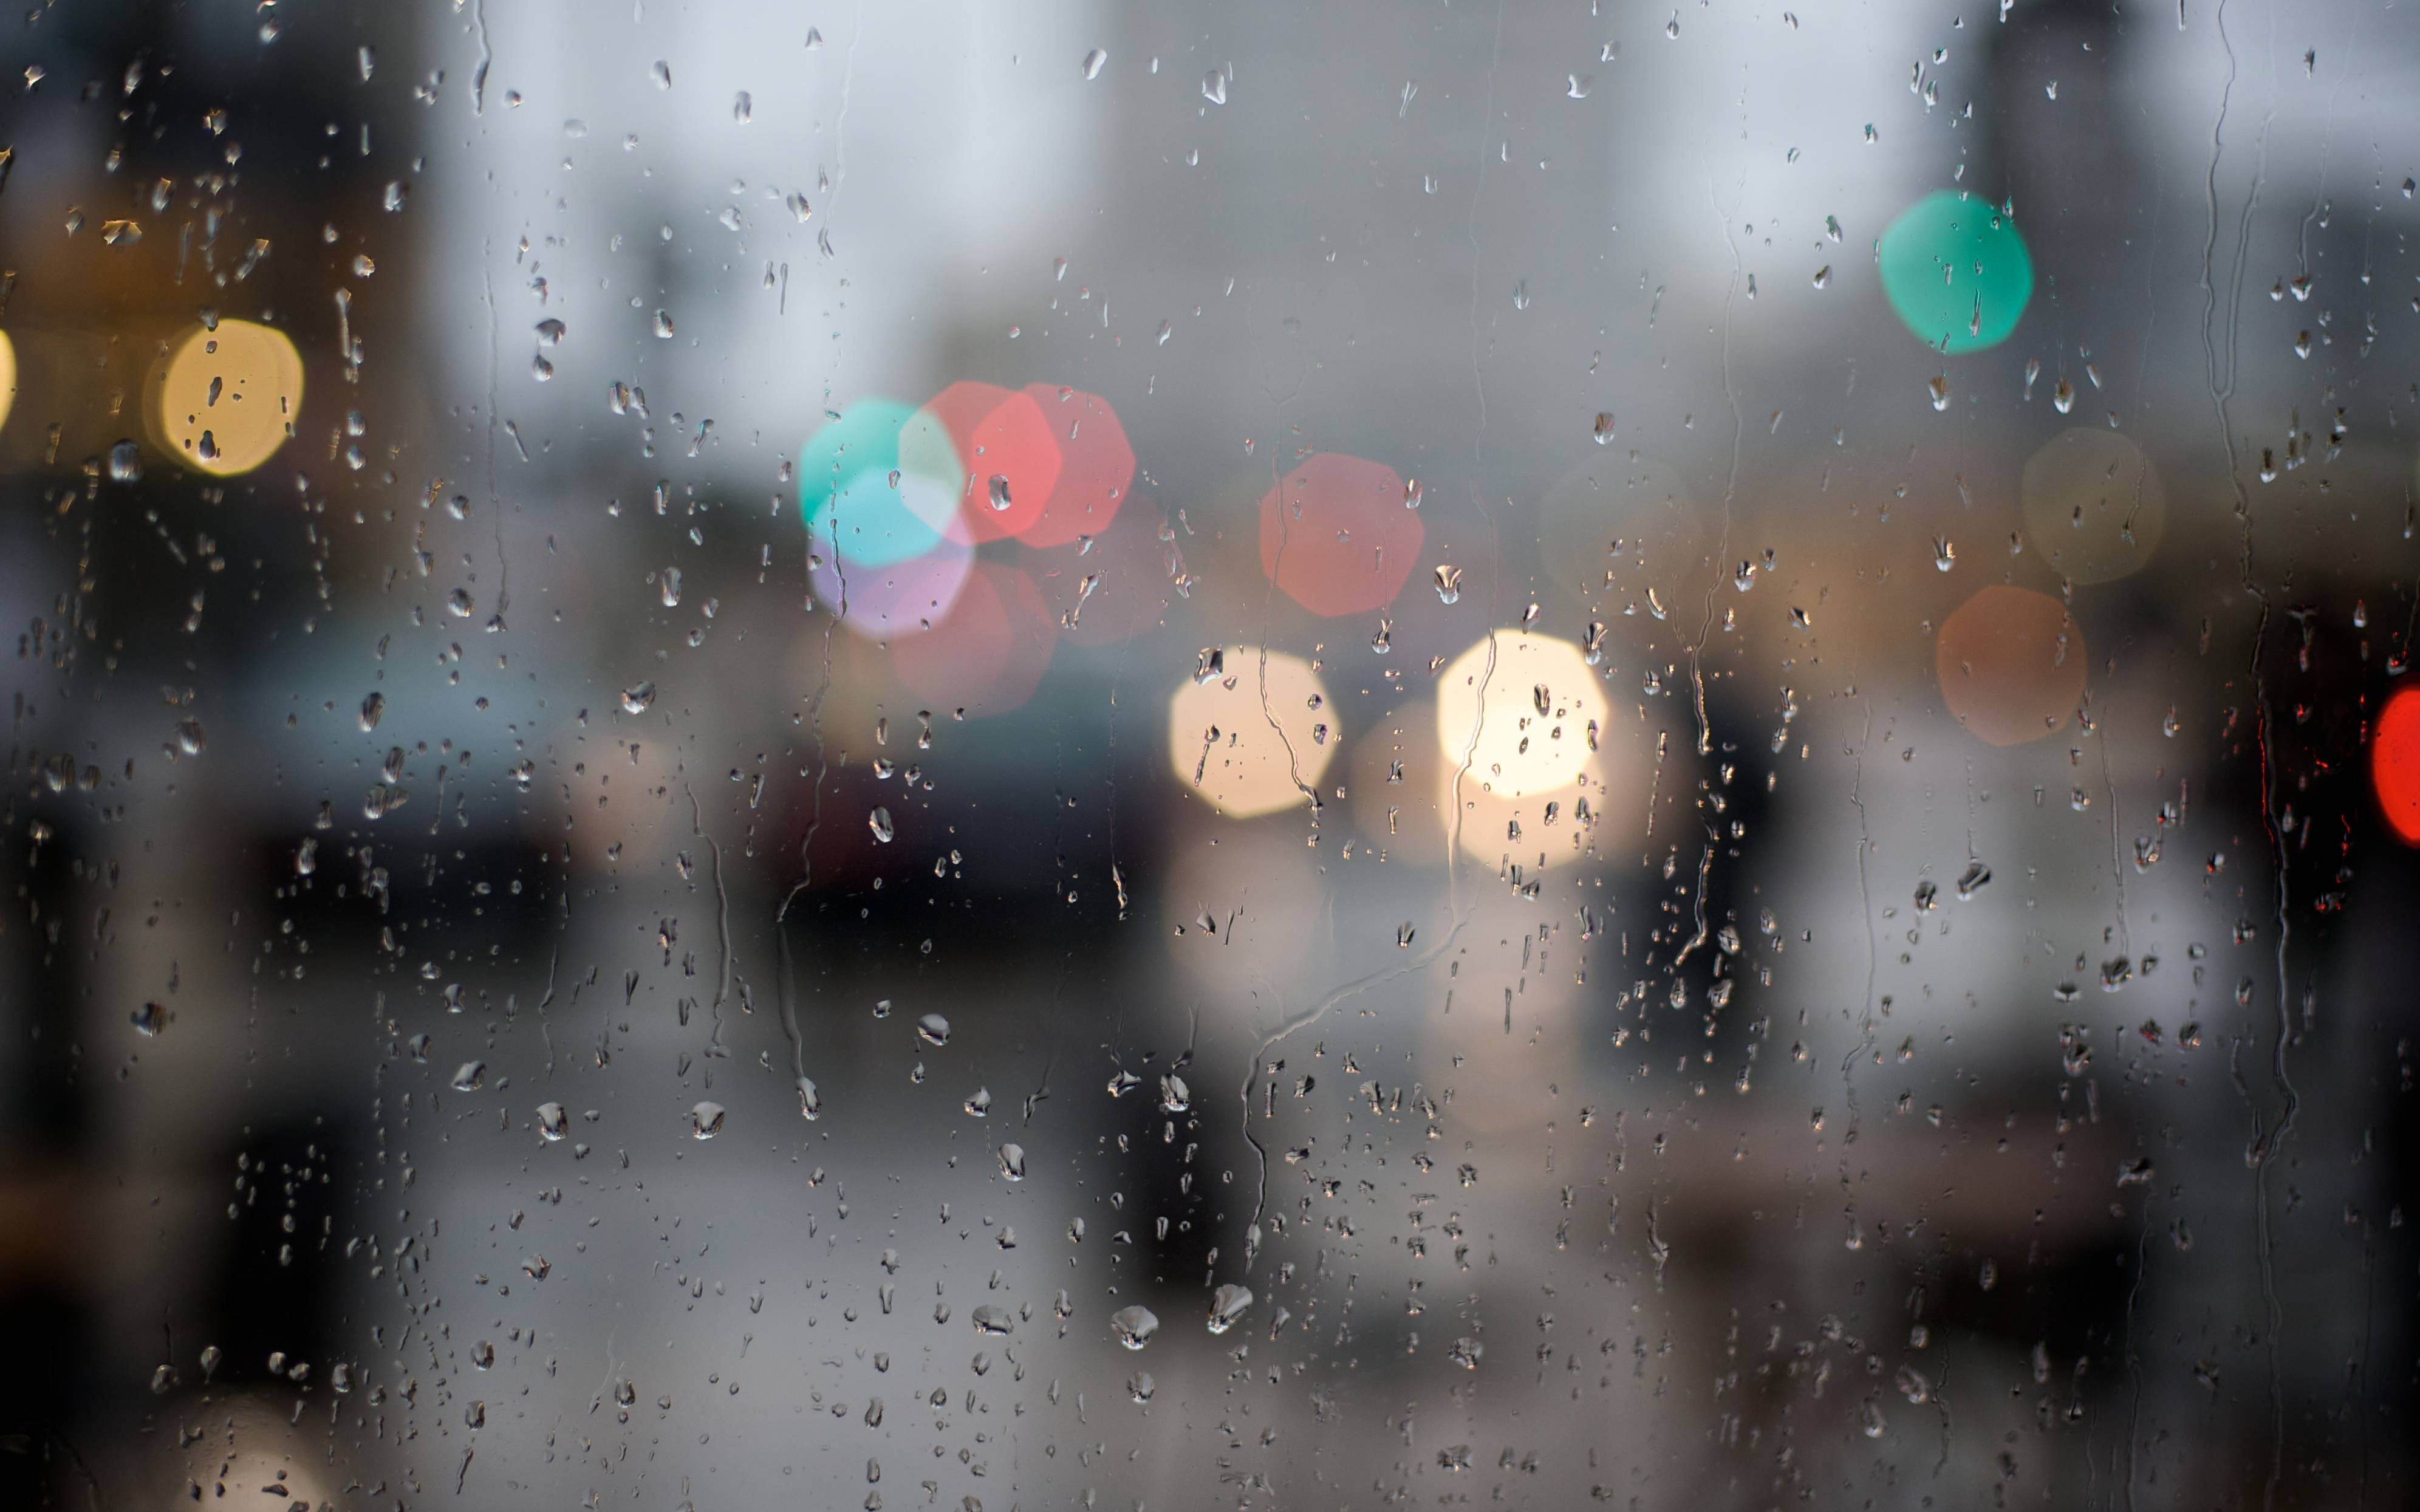 Rainy Day Wallpapers Top Free Rainy Day Backgrounds